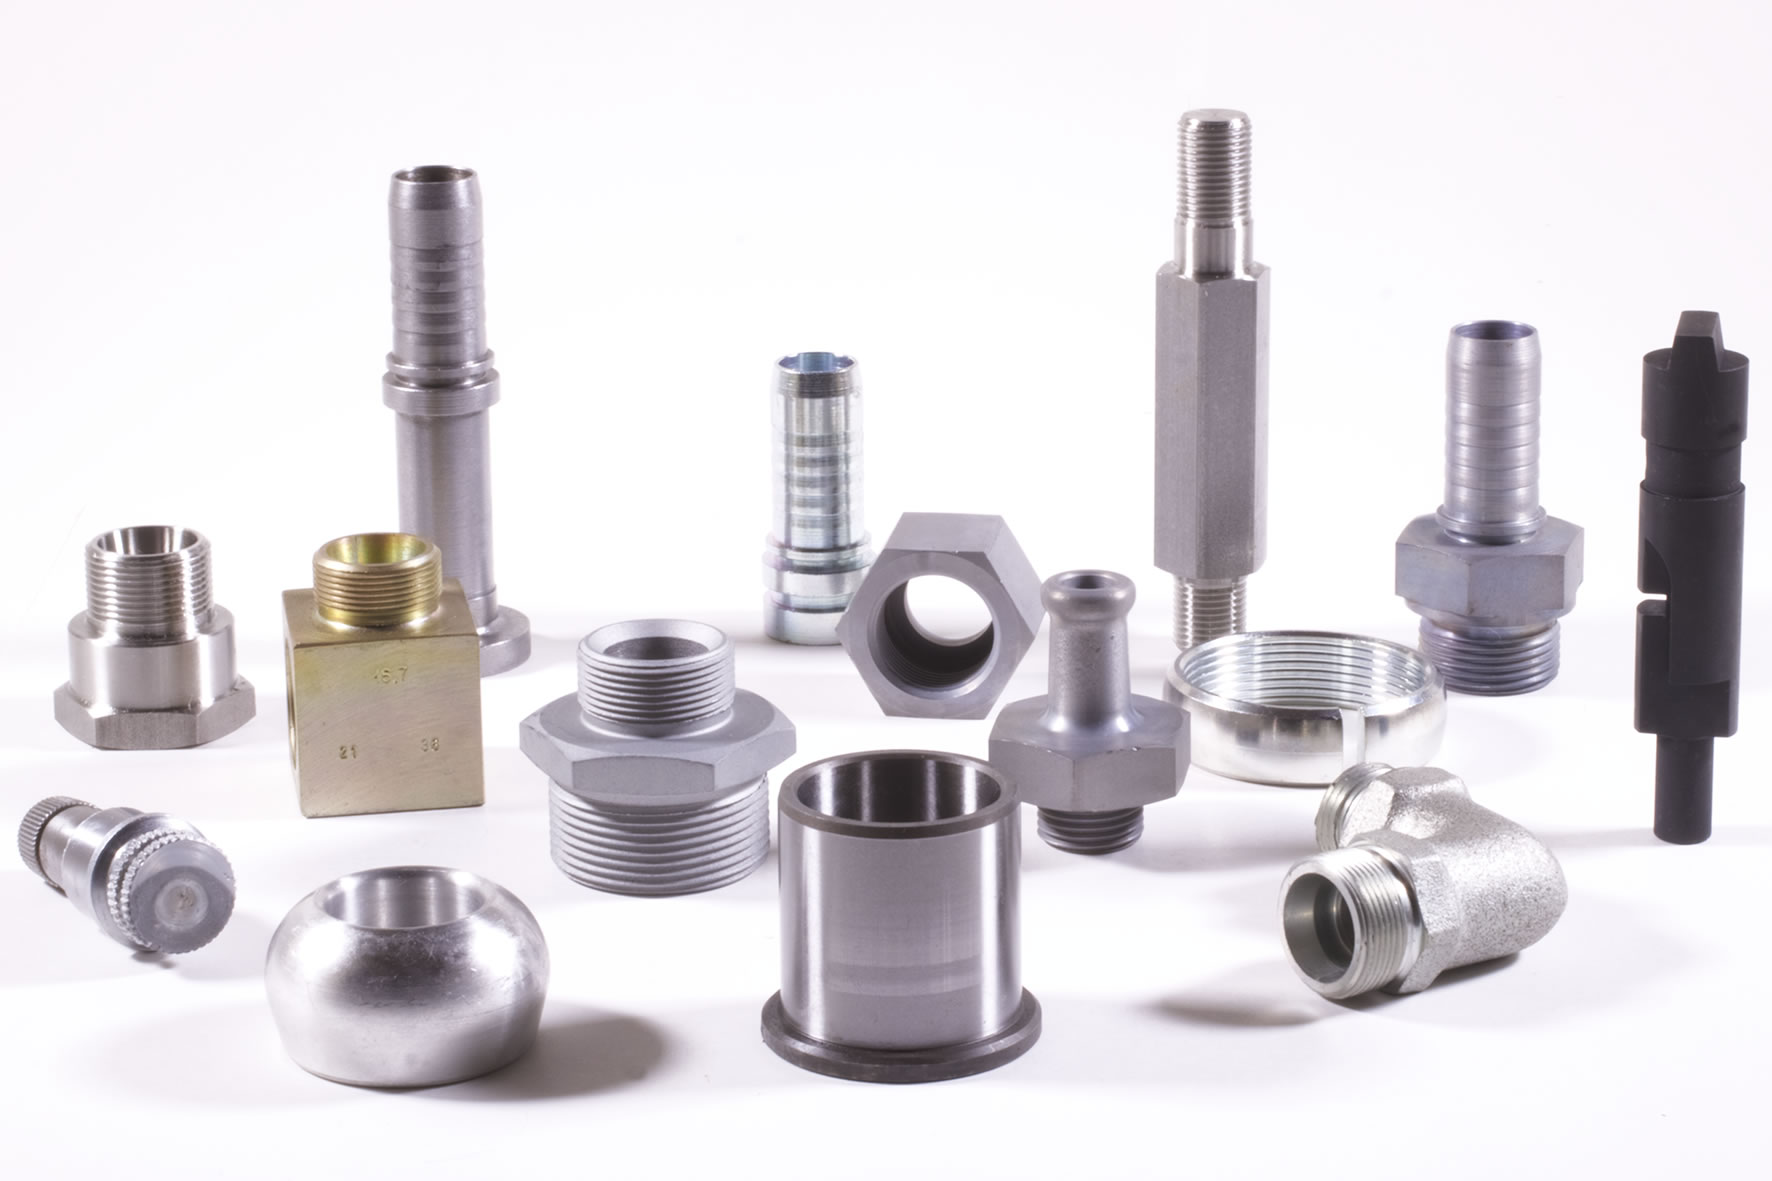 Manufacture of turned and machined parts on multi-spindle and CNC lathes